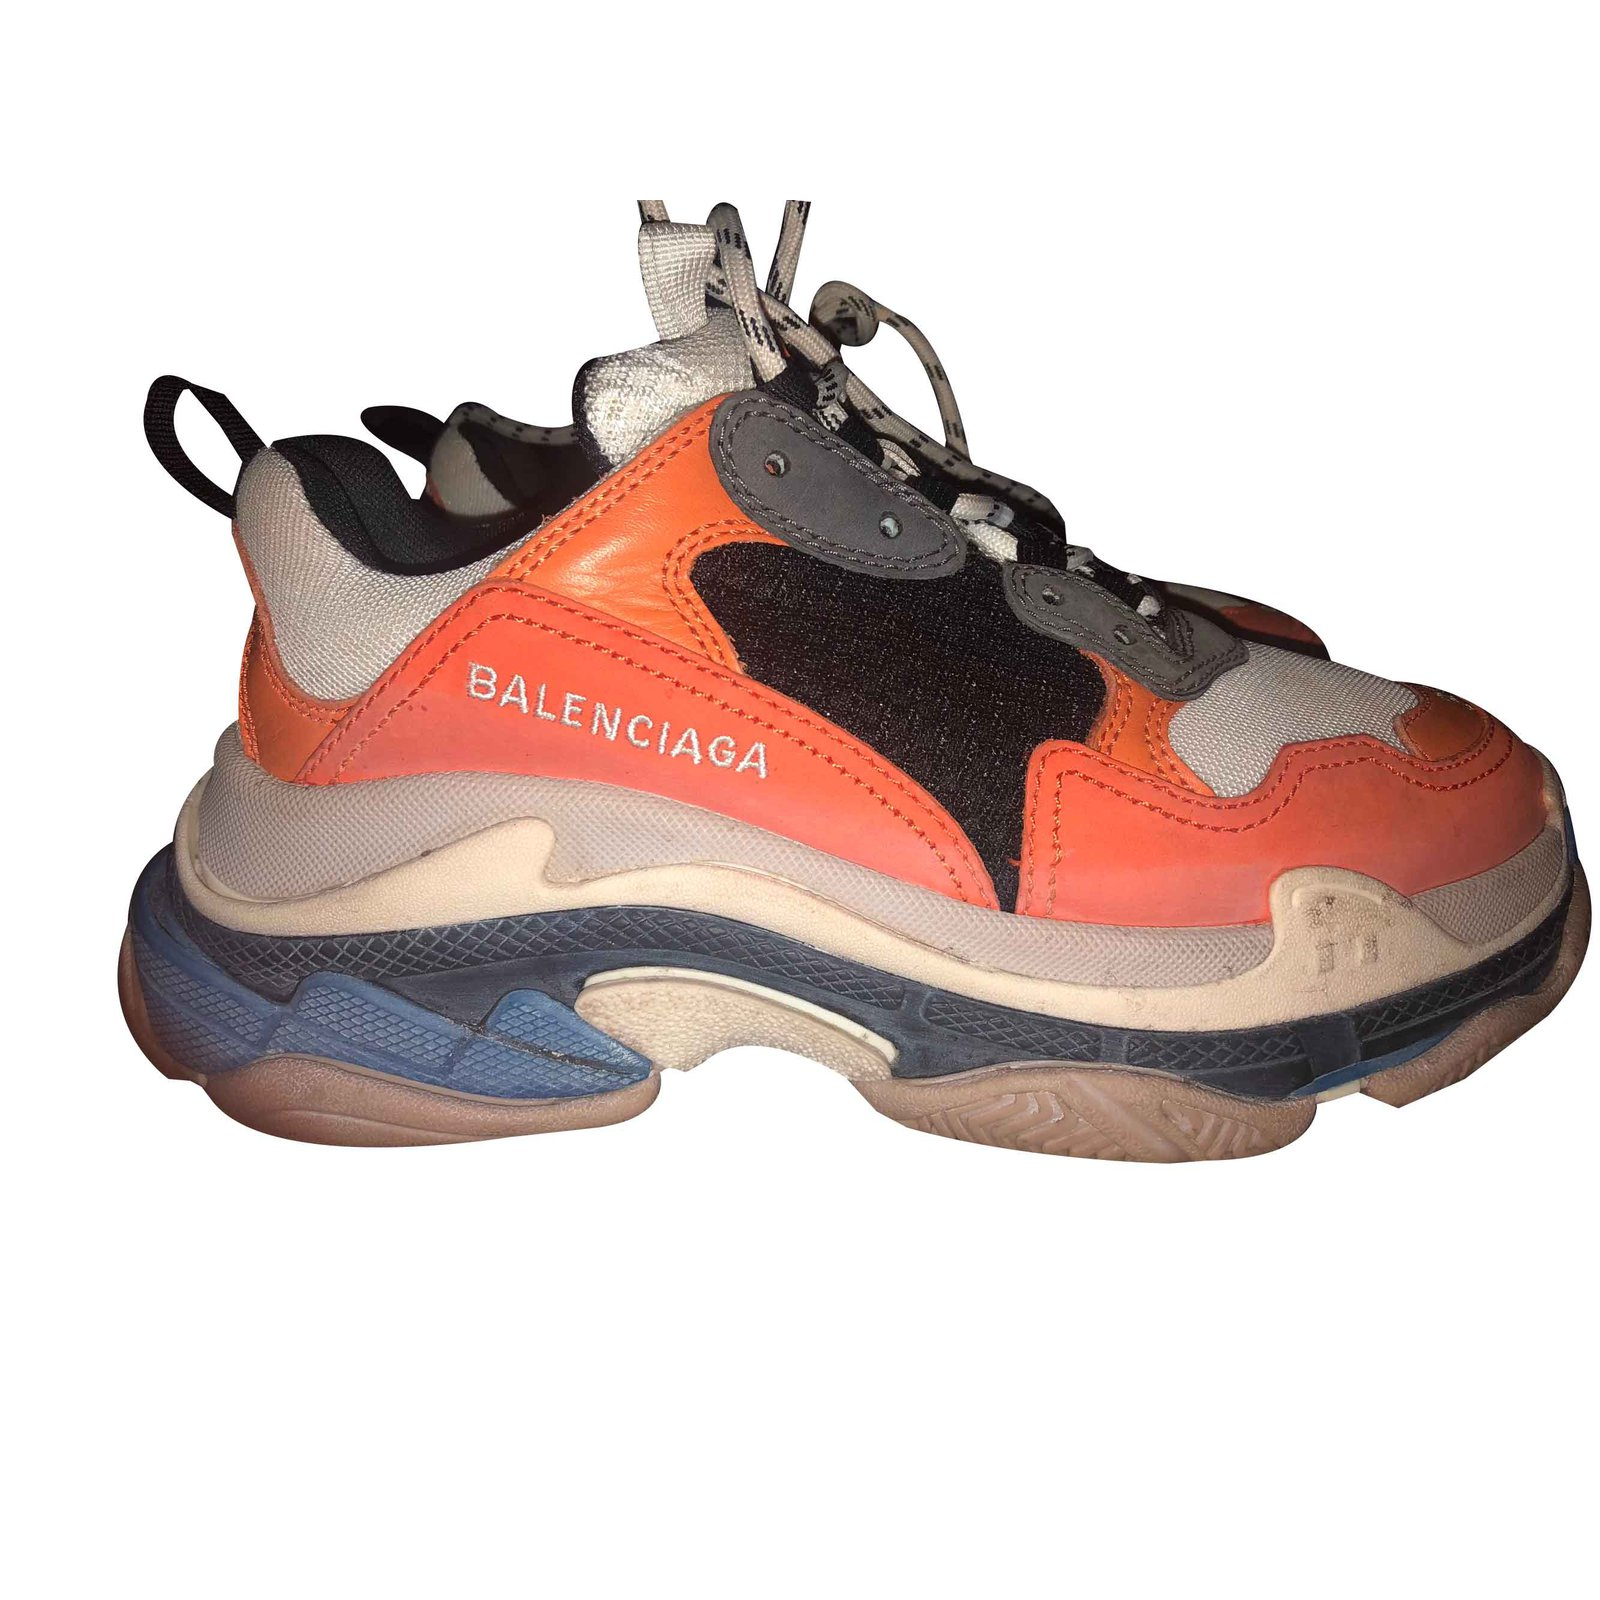 9858fa911b68 Balenciaga Triple s Sneakers Leather Orange ref.102302 - Joli Closet